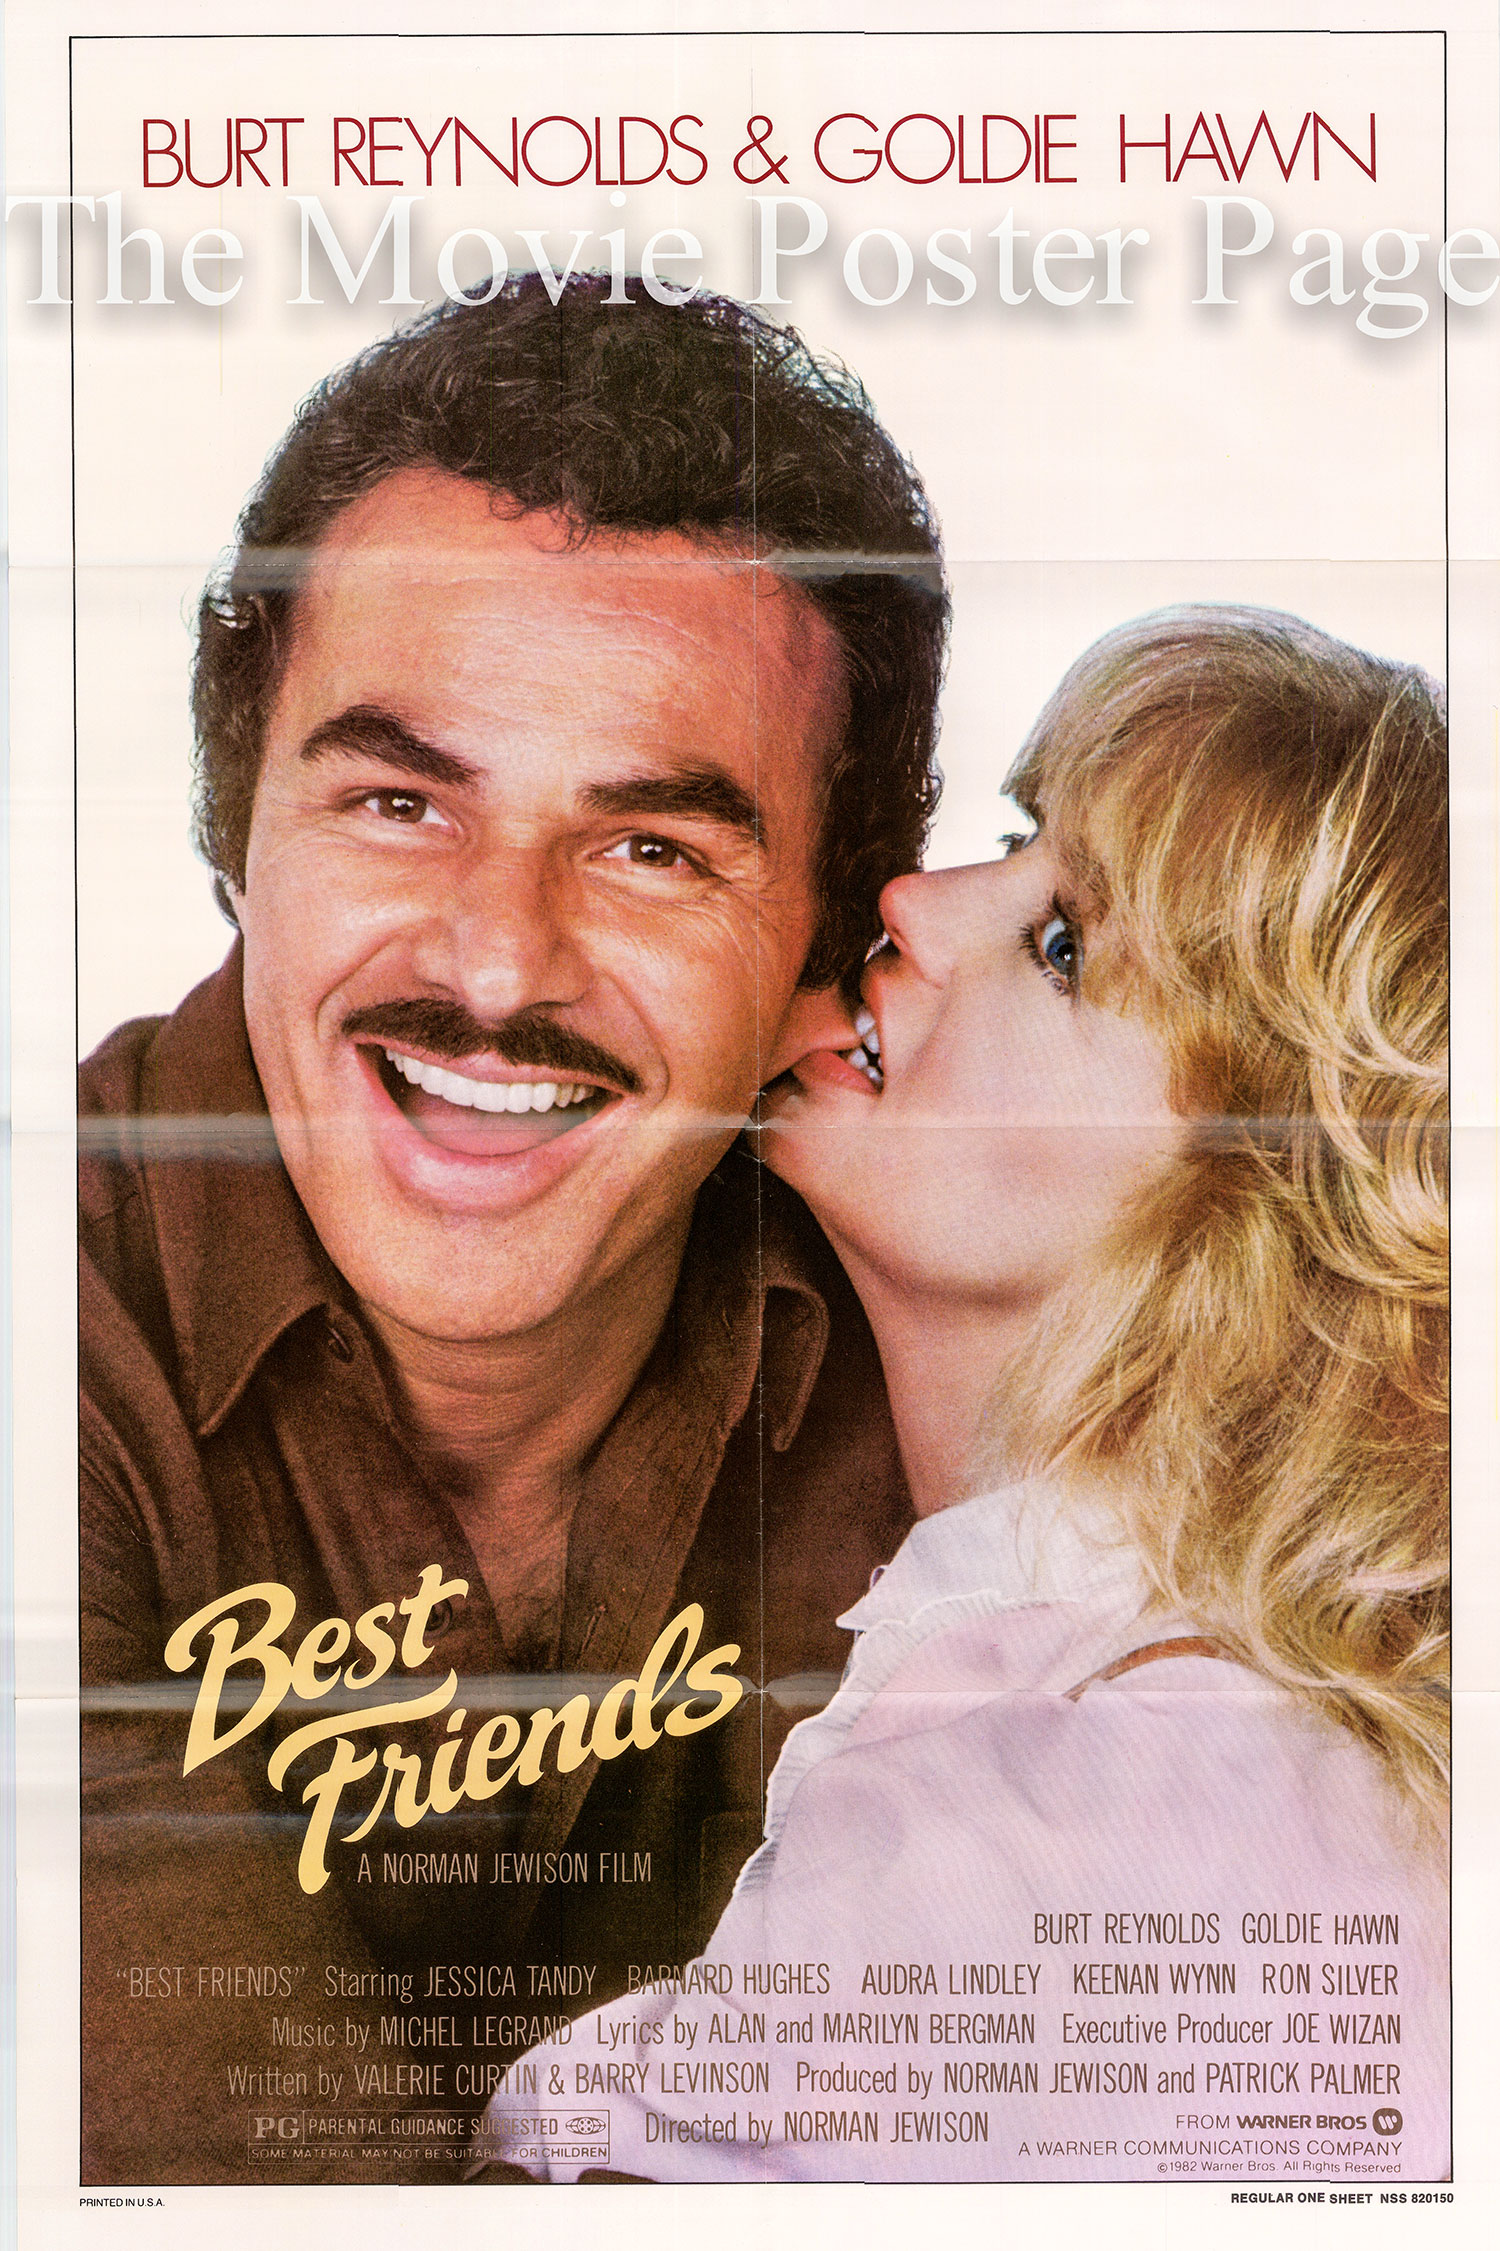 Pictured is a US one-sheet poster for the 1982 Norman Jewison film Best Friends starring Burt Reynolds.